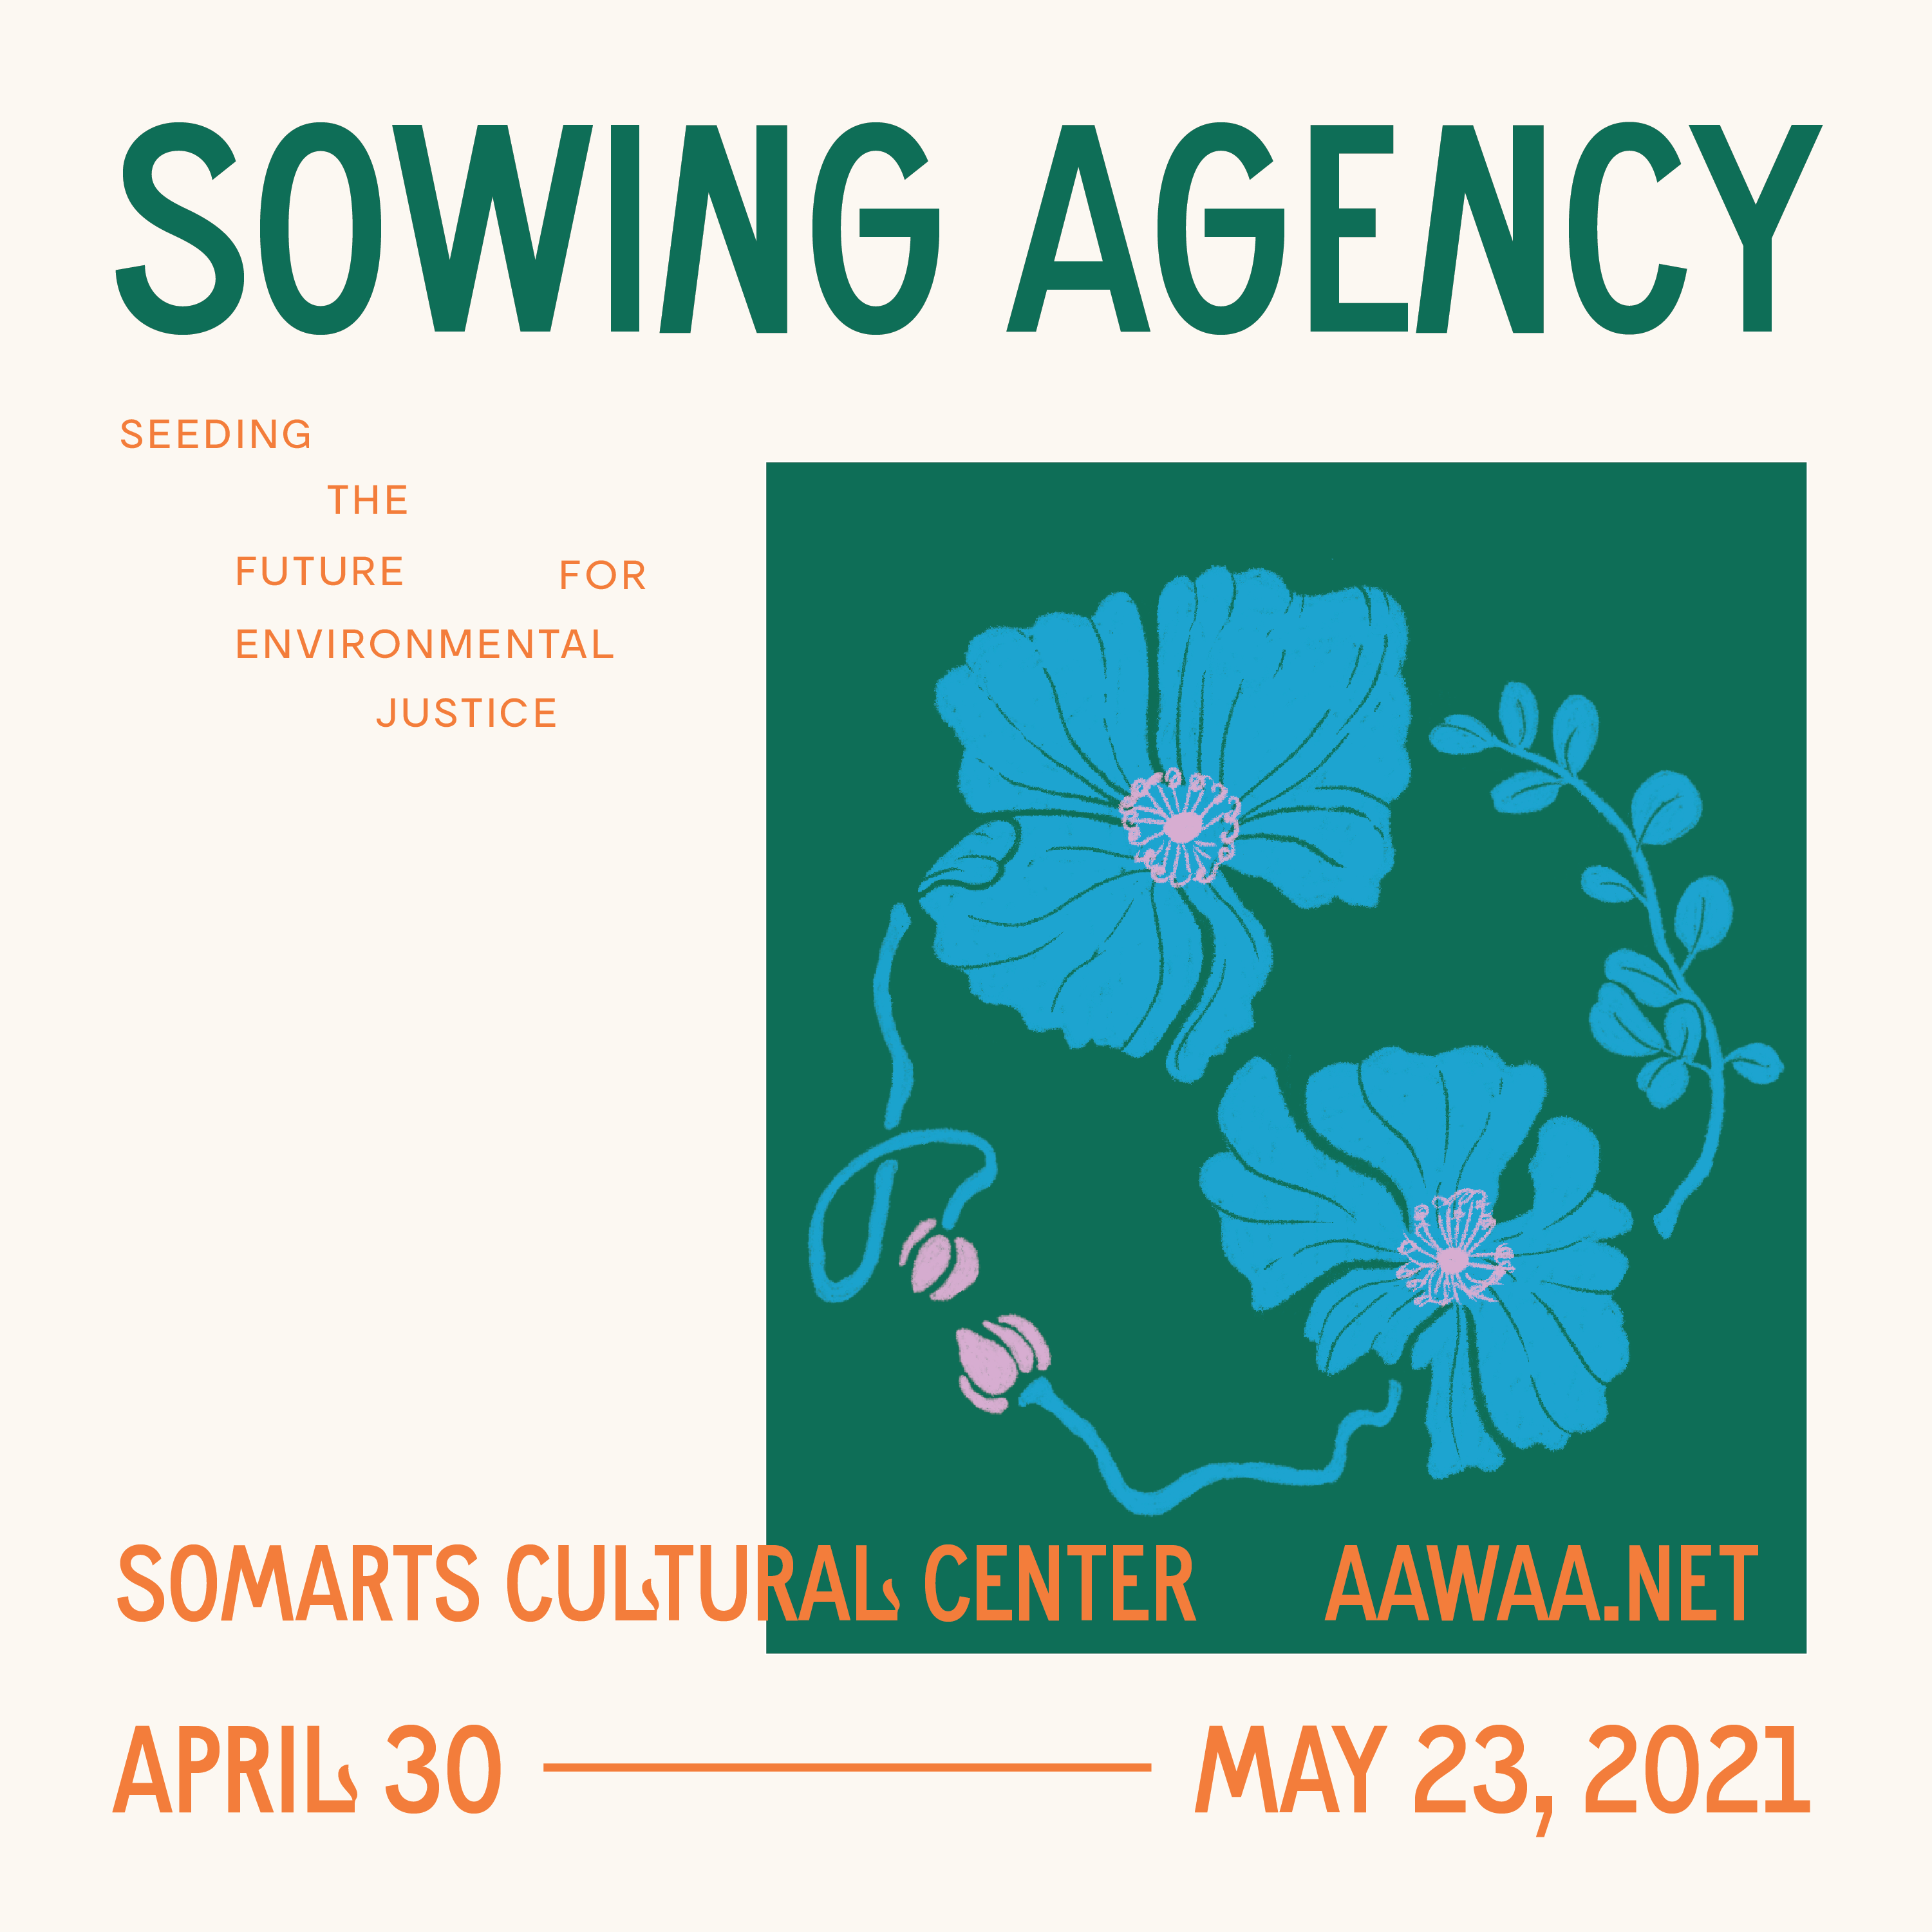 """Event graphic with green and orange text that says """"SOWING AGENCY. Seeding the Future for Environmental Justice. SOMArts Cultural Center. AAWAA.net. April 30 to May 23, 2021. There is a drawing of blue poppy flowers in the shape of a globe with a malunggay leaf and stem. The flower petals and stems are blue with a pink center and buds."""